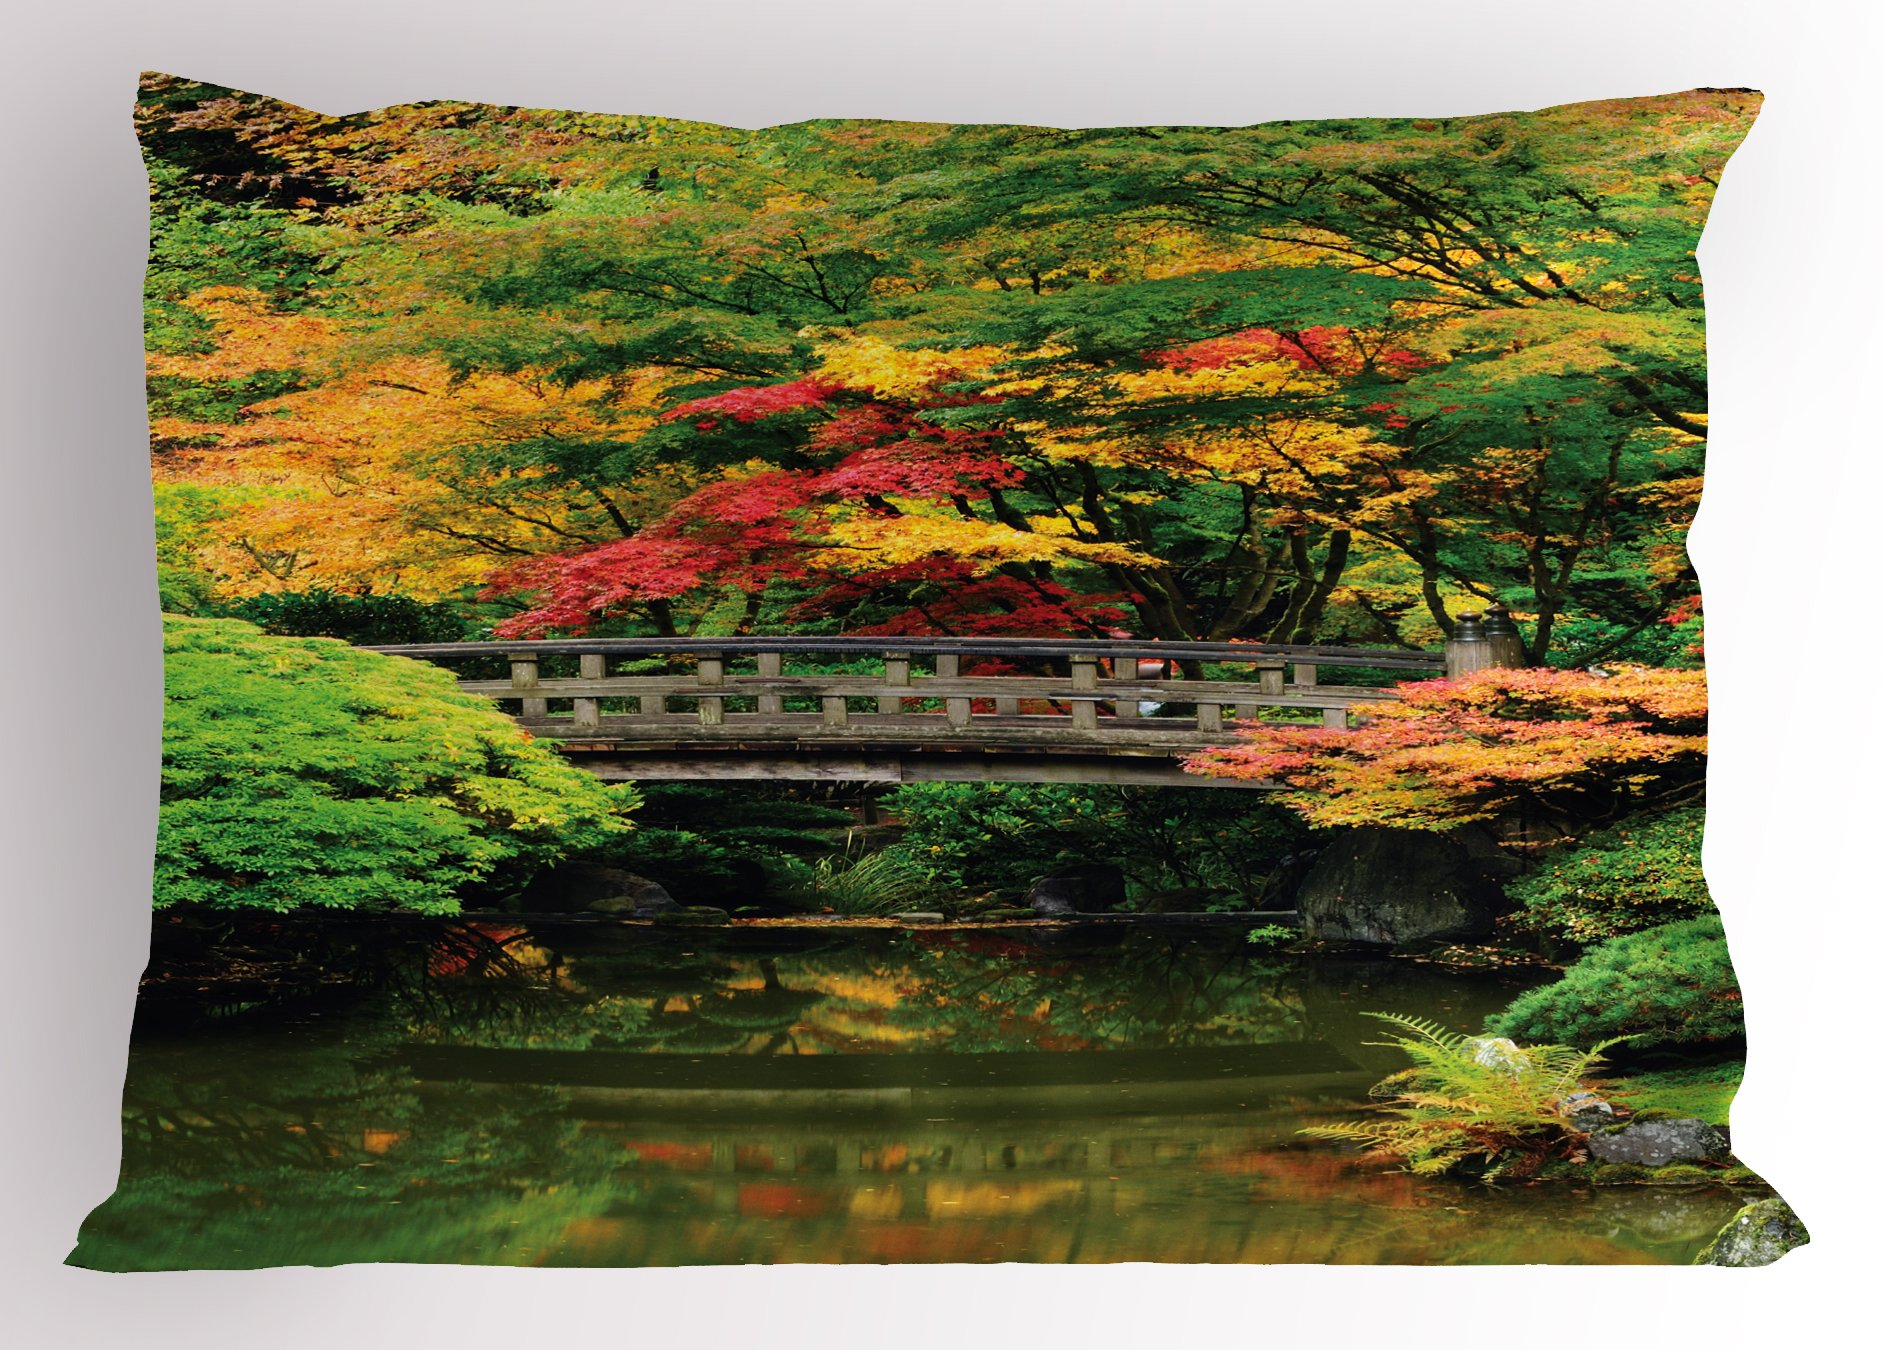 Lunarable Japanese Pillow Sham, Authentic Japanese Garden with Wood Old Bridge on River Creek Vibrant Eastern, Decorative Standard Size Printed Pillowcase, 26 X 20 inches, Green Coral by Lunarable (Image #1)